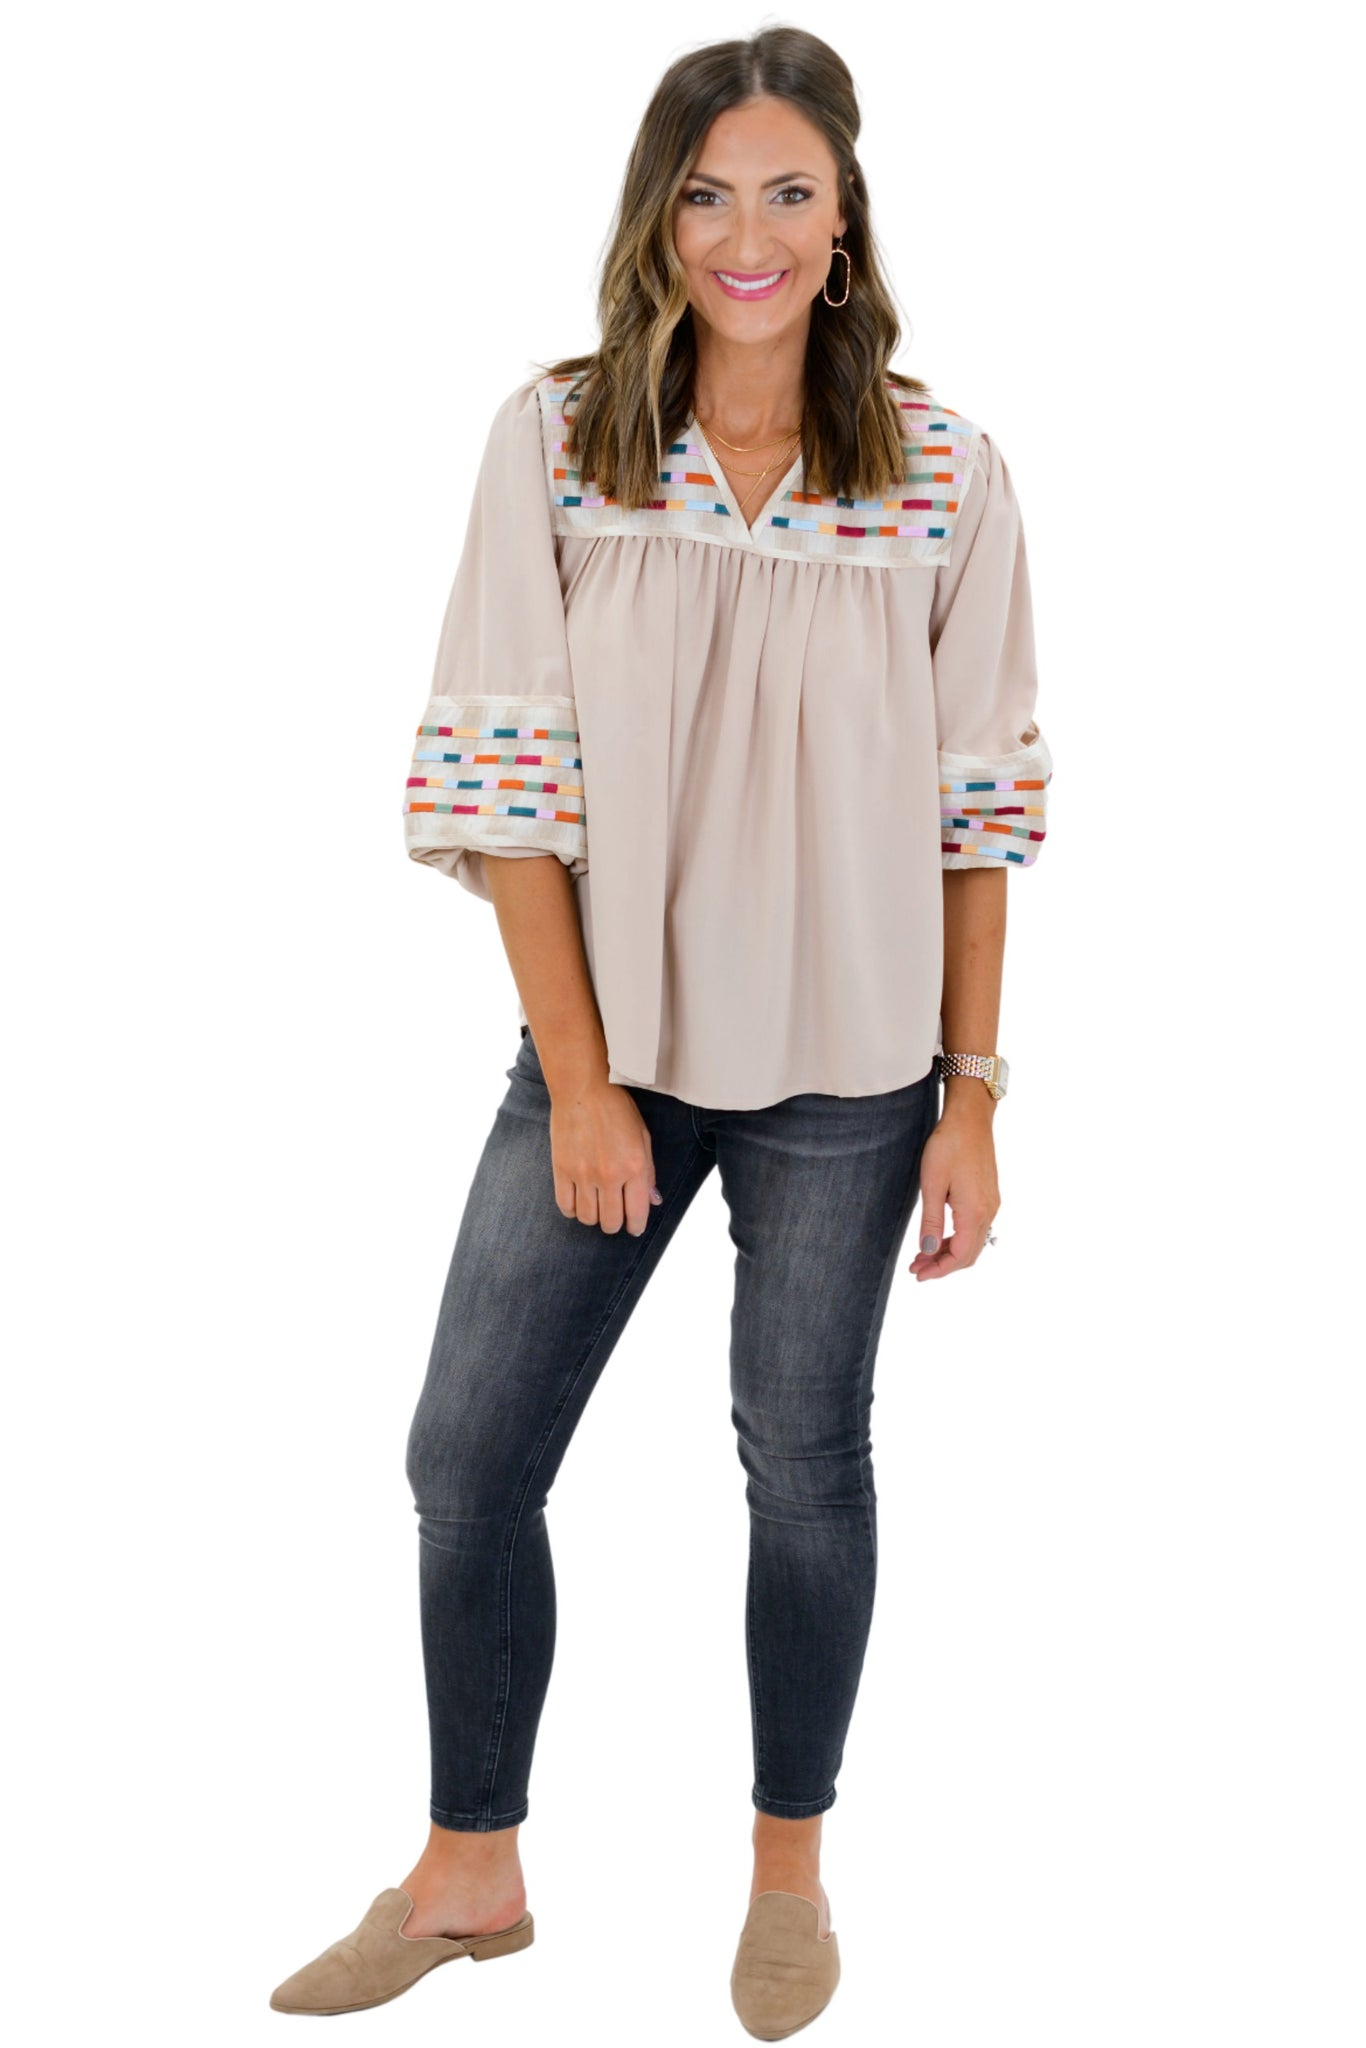 Oatmeal Balloon Sleeve Top w/ Embroidery